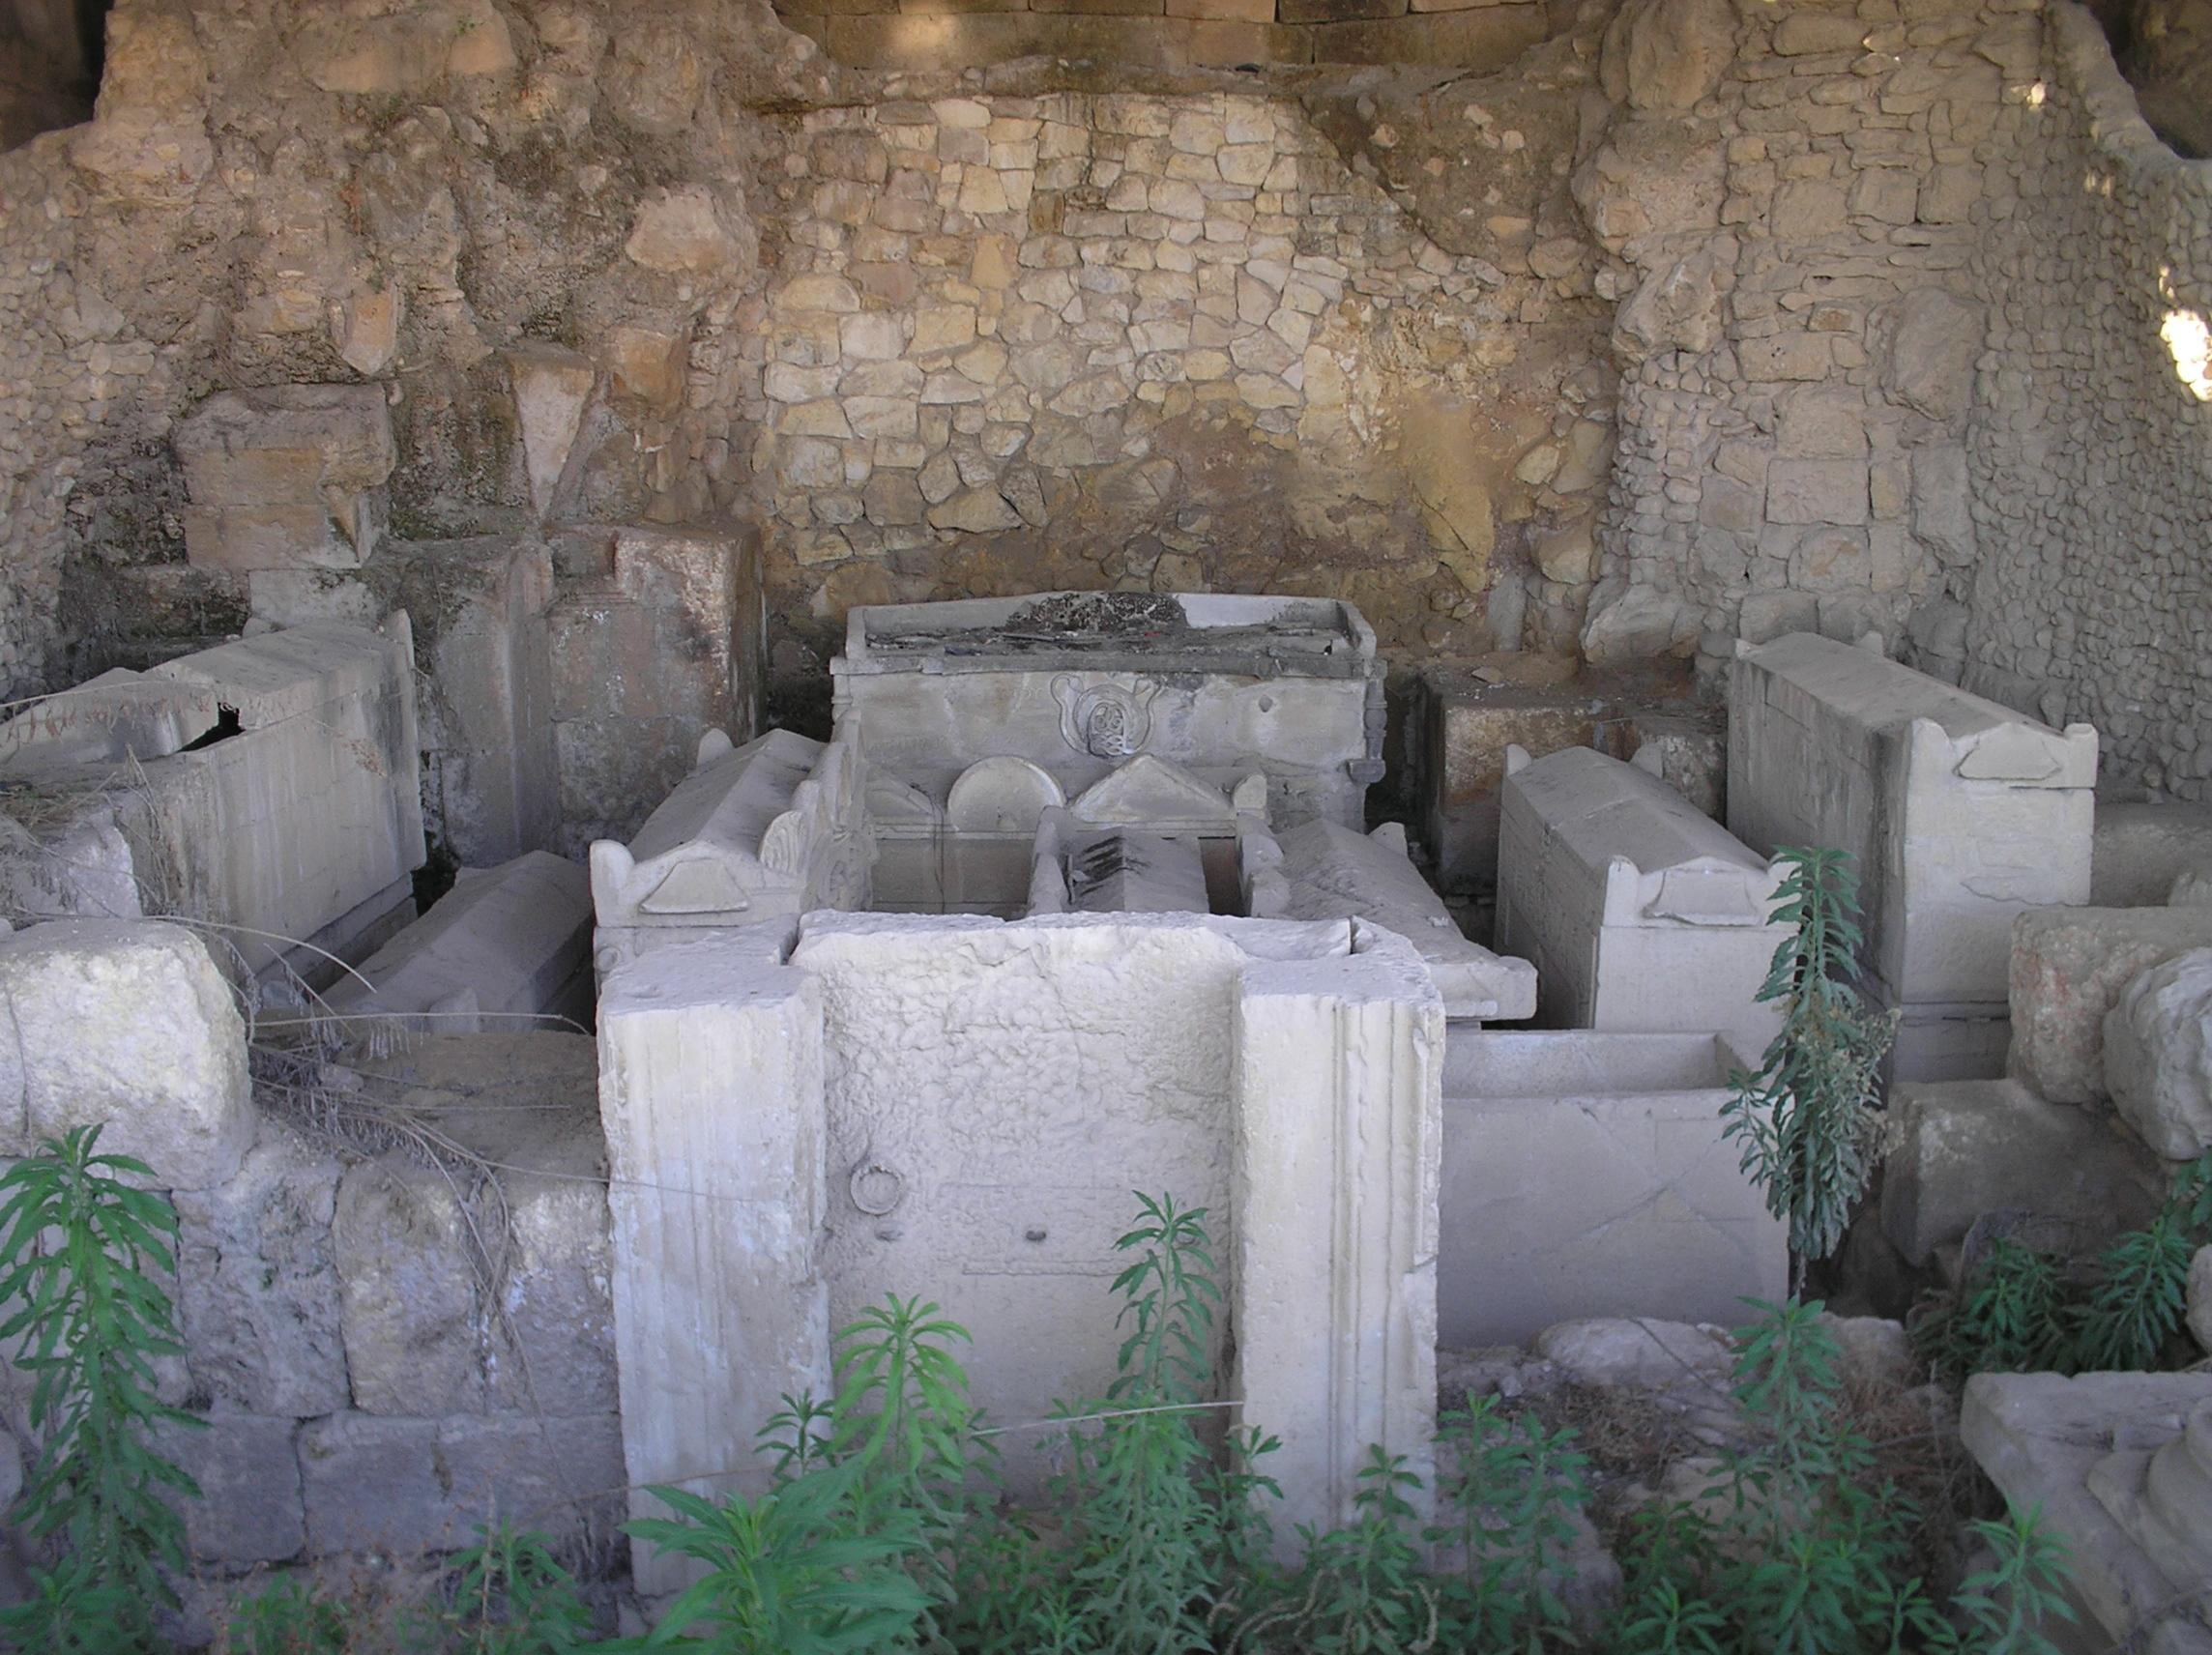 Nablus - نابلس : Archaeological site next 'Askar on the road to Amman